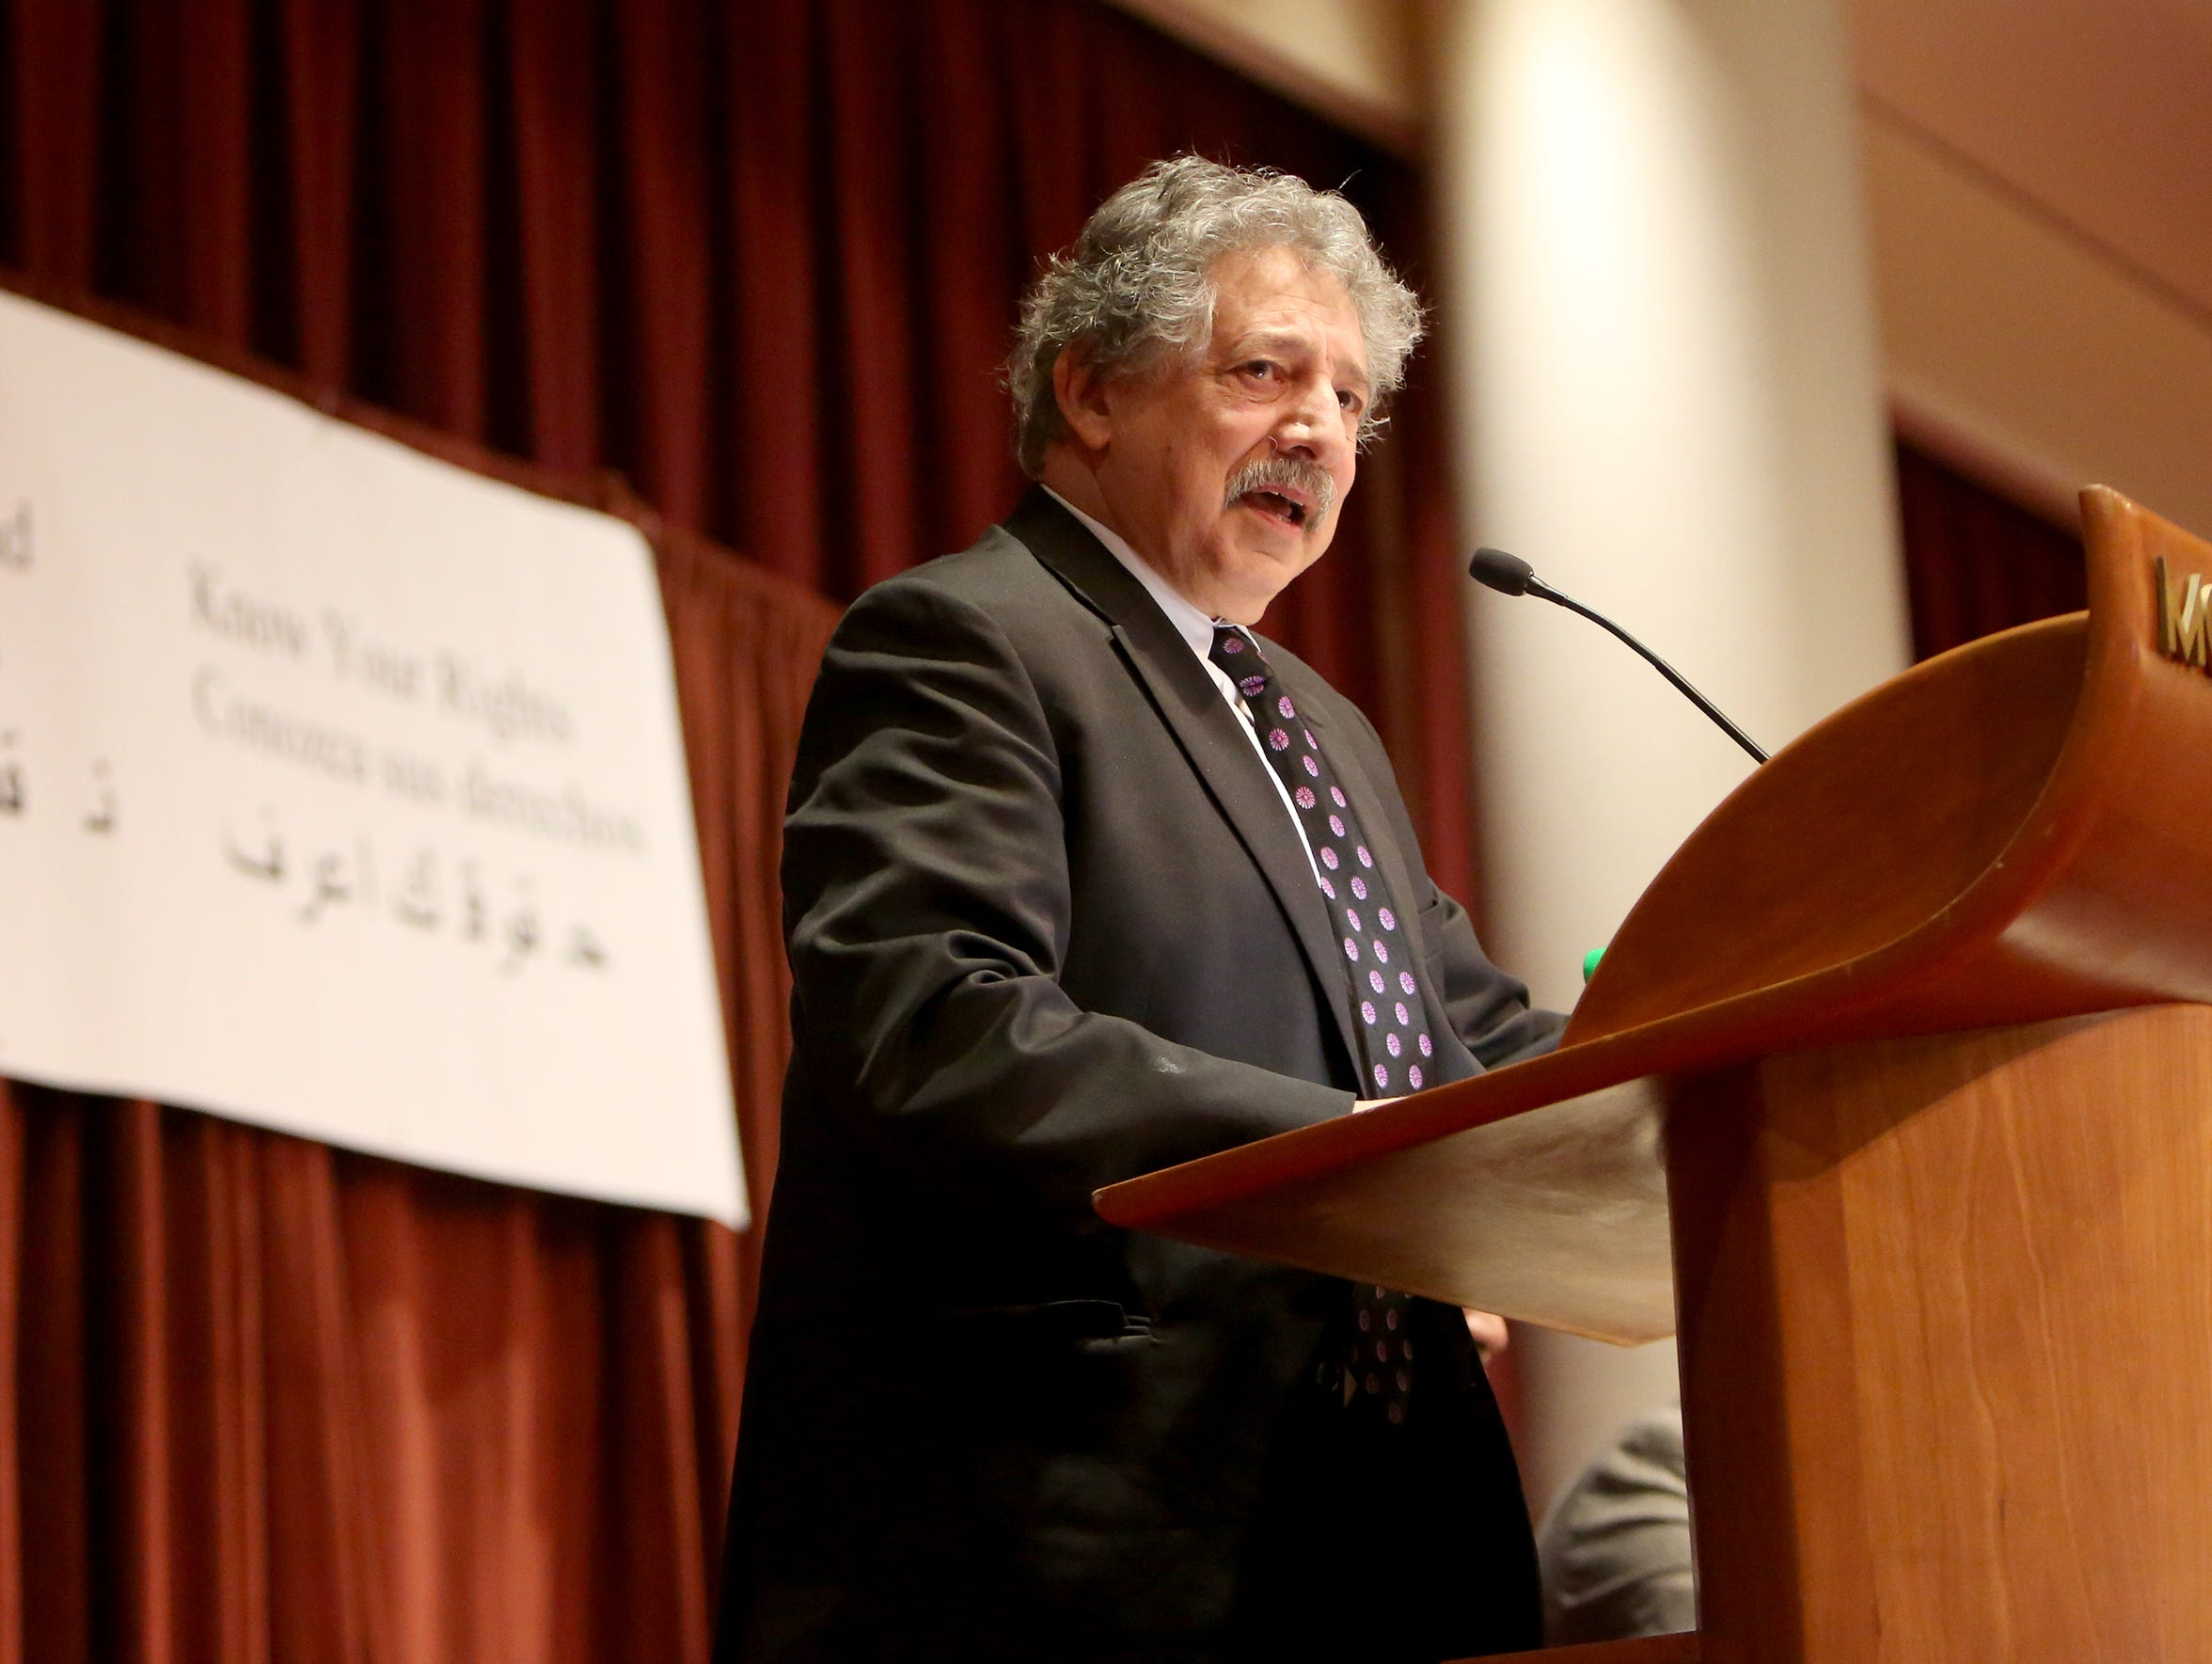 Madison Mayor Paul Soglin addresses about 2,000 people